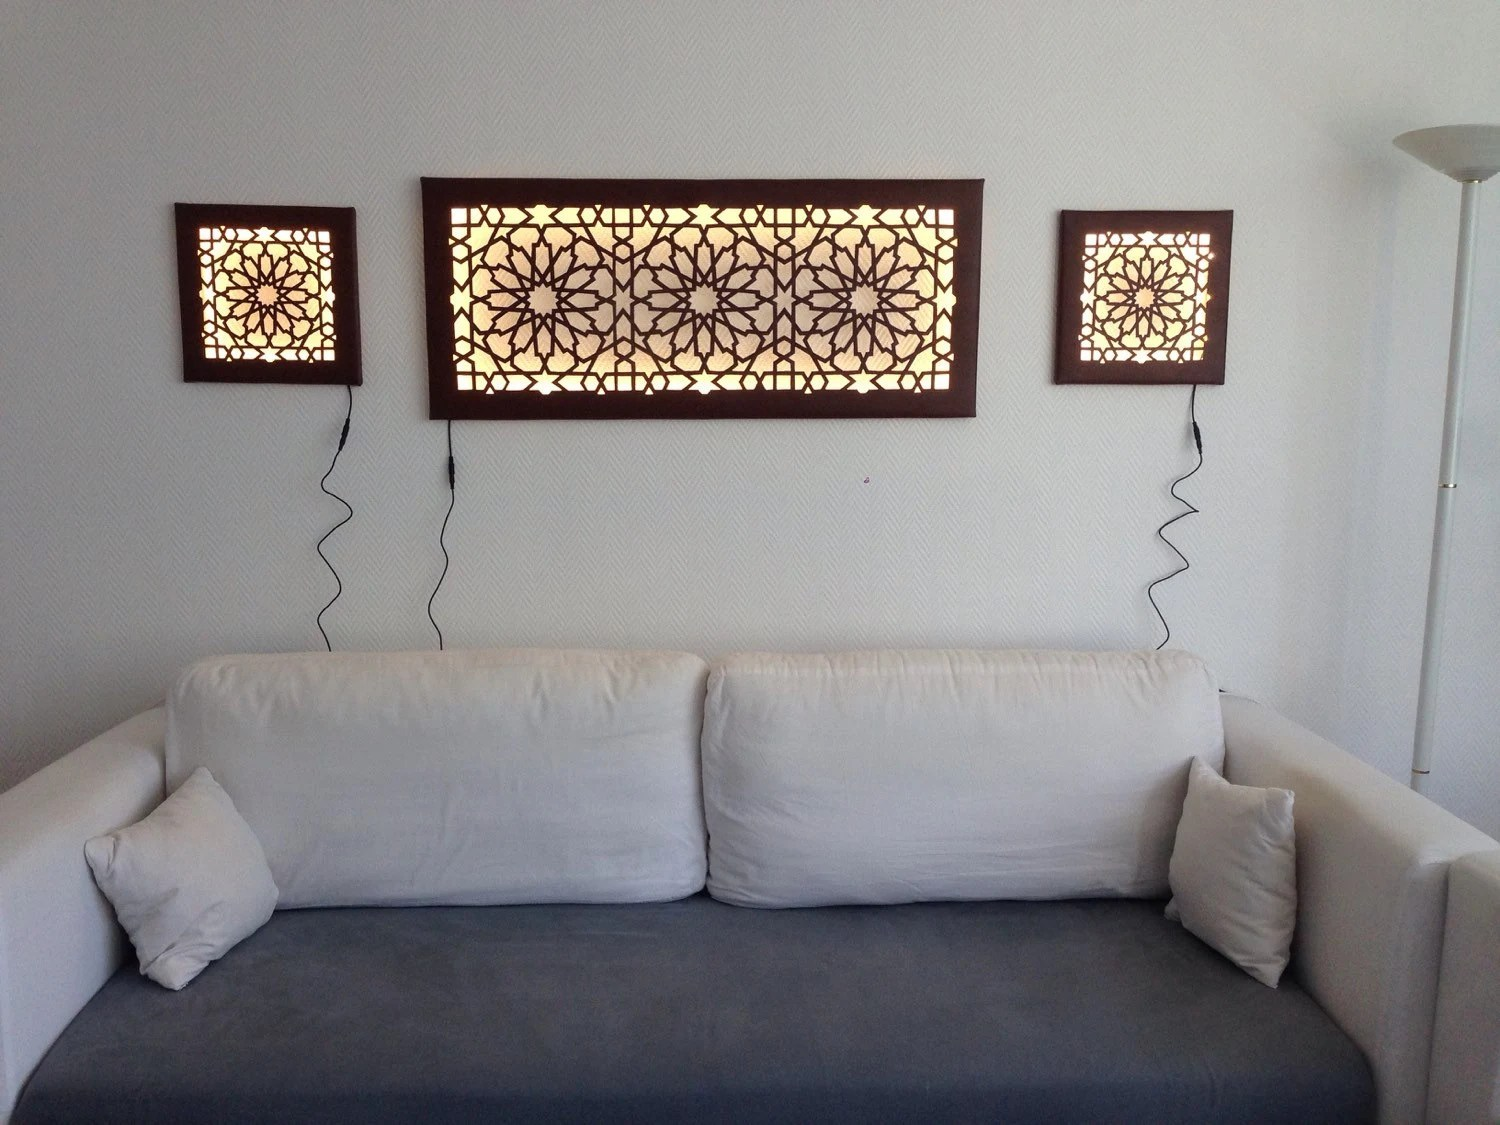 Led Wanddeko Led Wanddeko Wall Mural With Islamic Oriental Pattern Faux Leather Wall Light